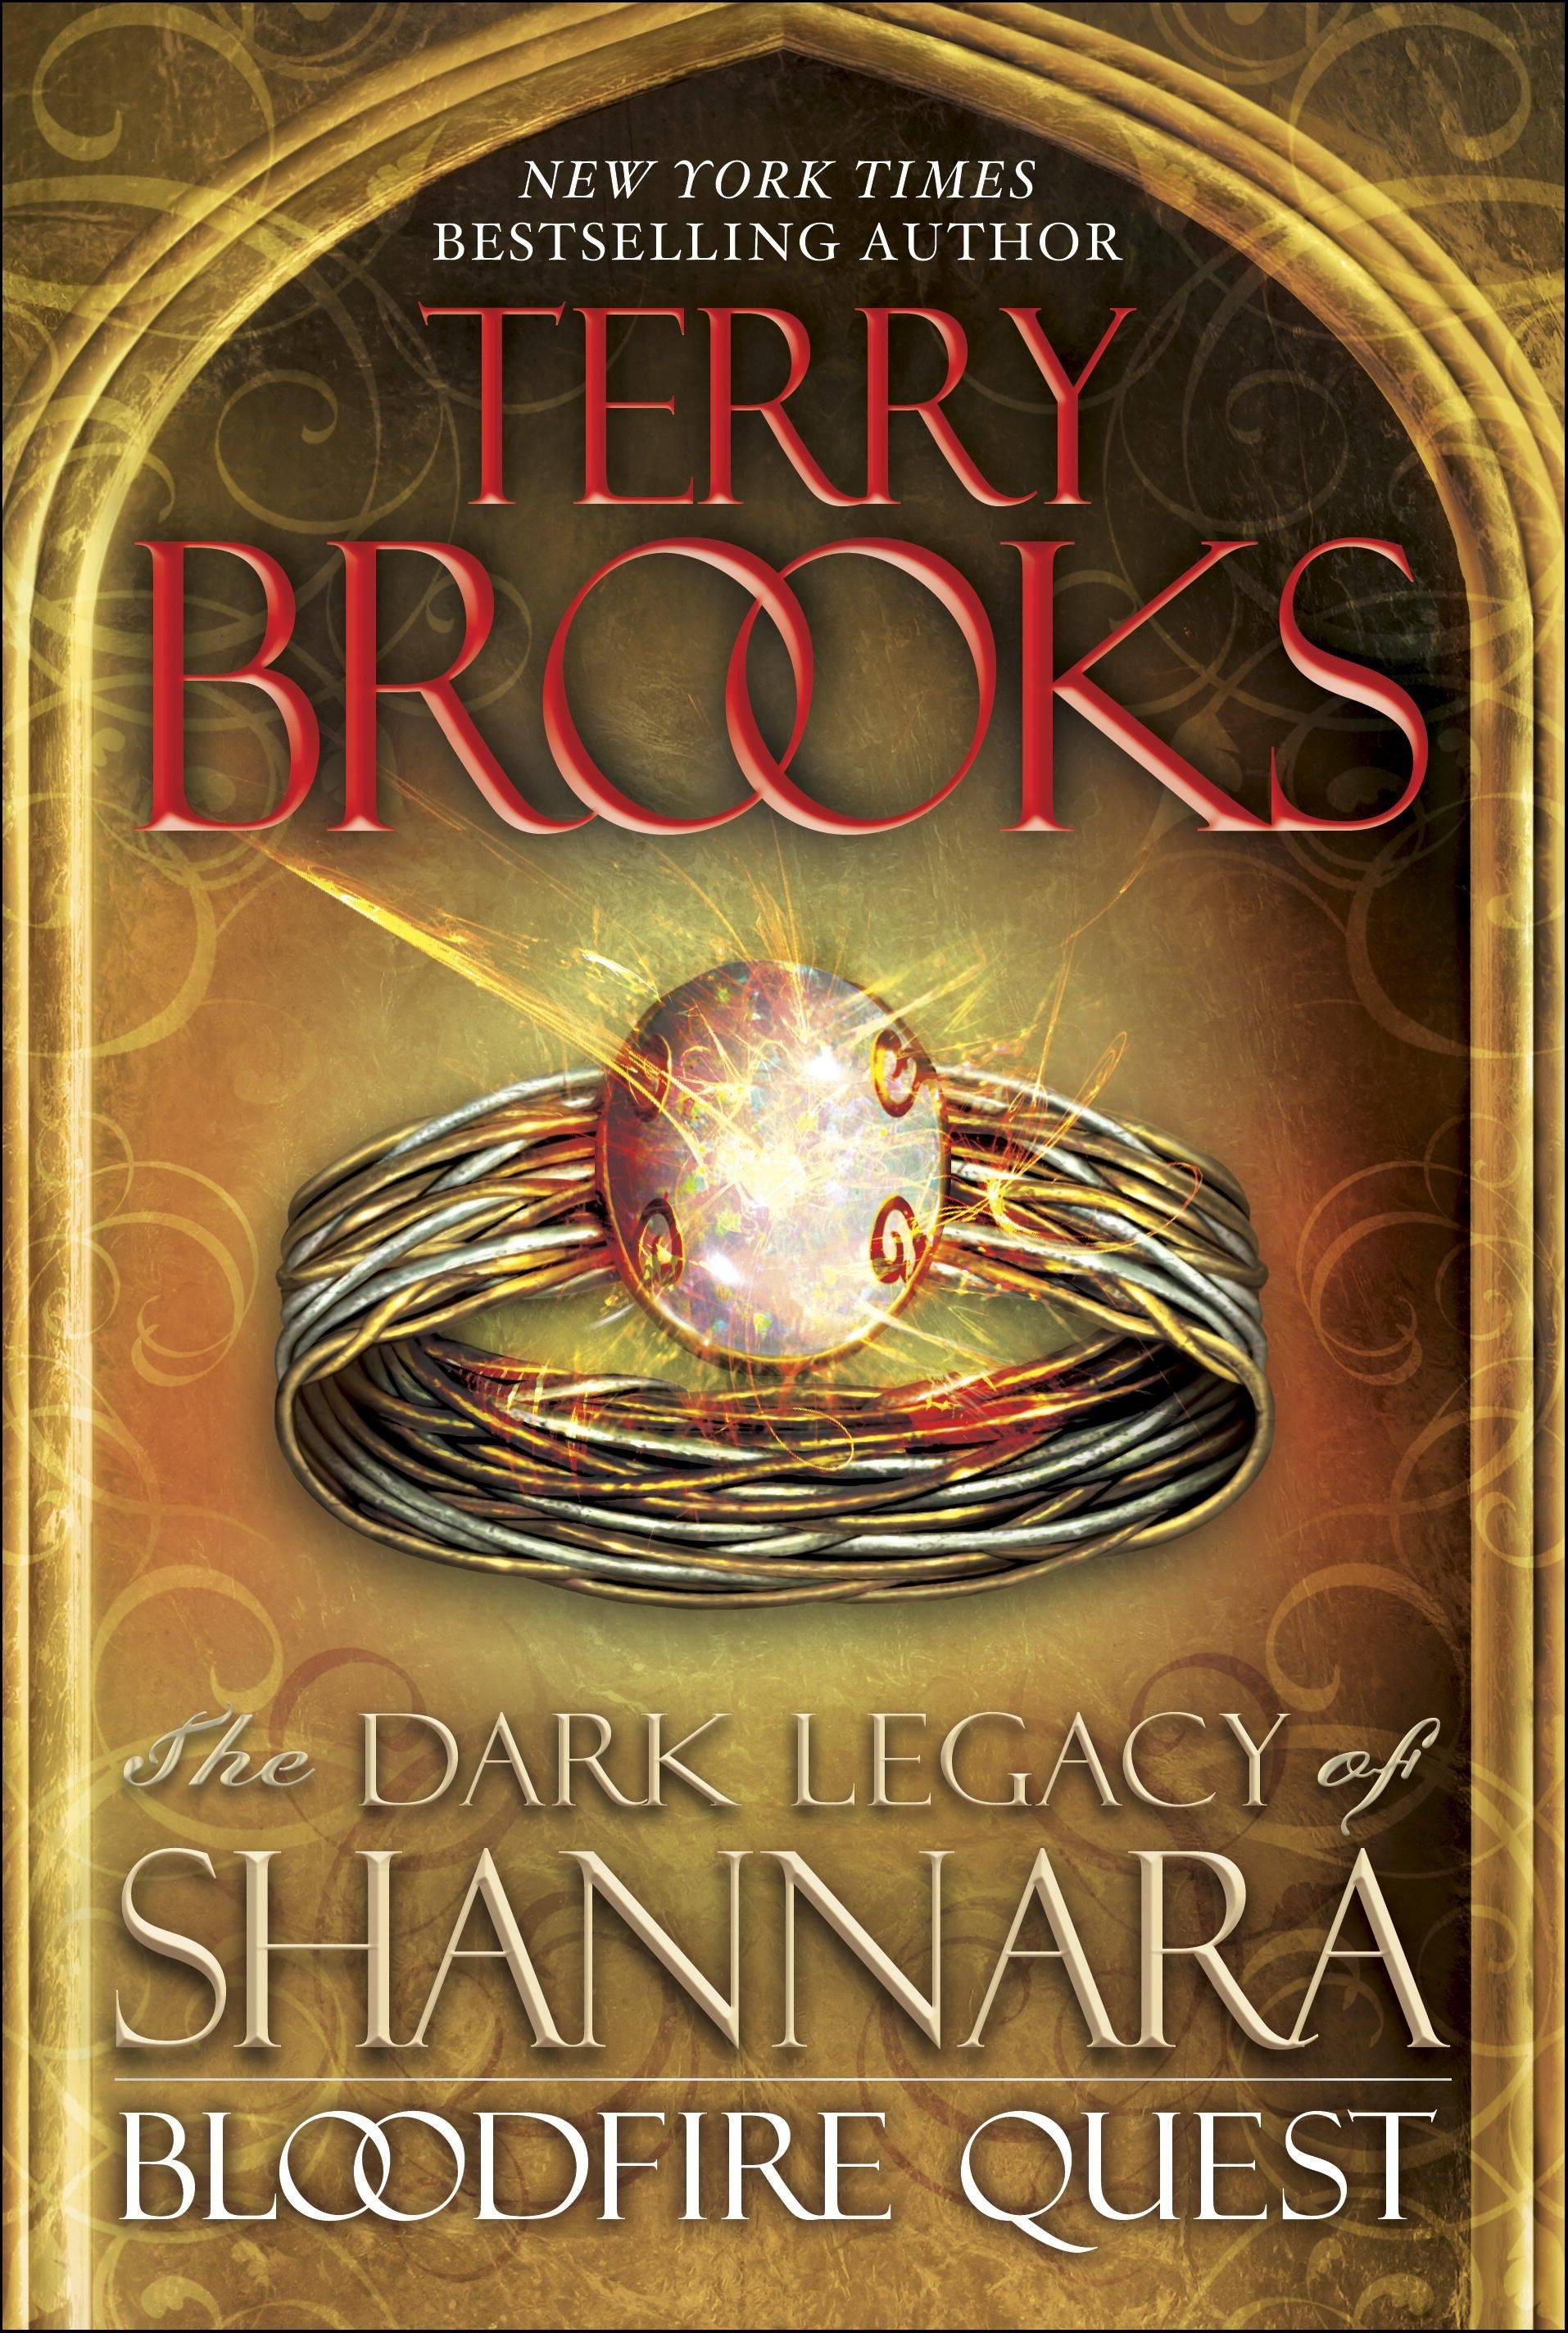 """Bloodfire Quest: The Dark Legacy of Shannara"" by Terry Brooks"